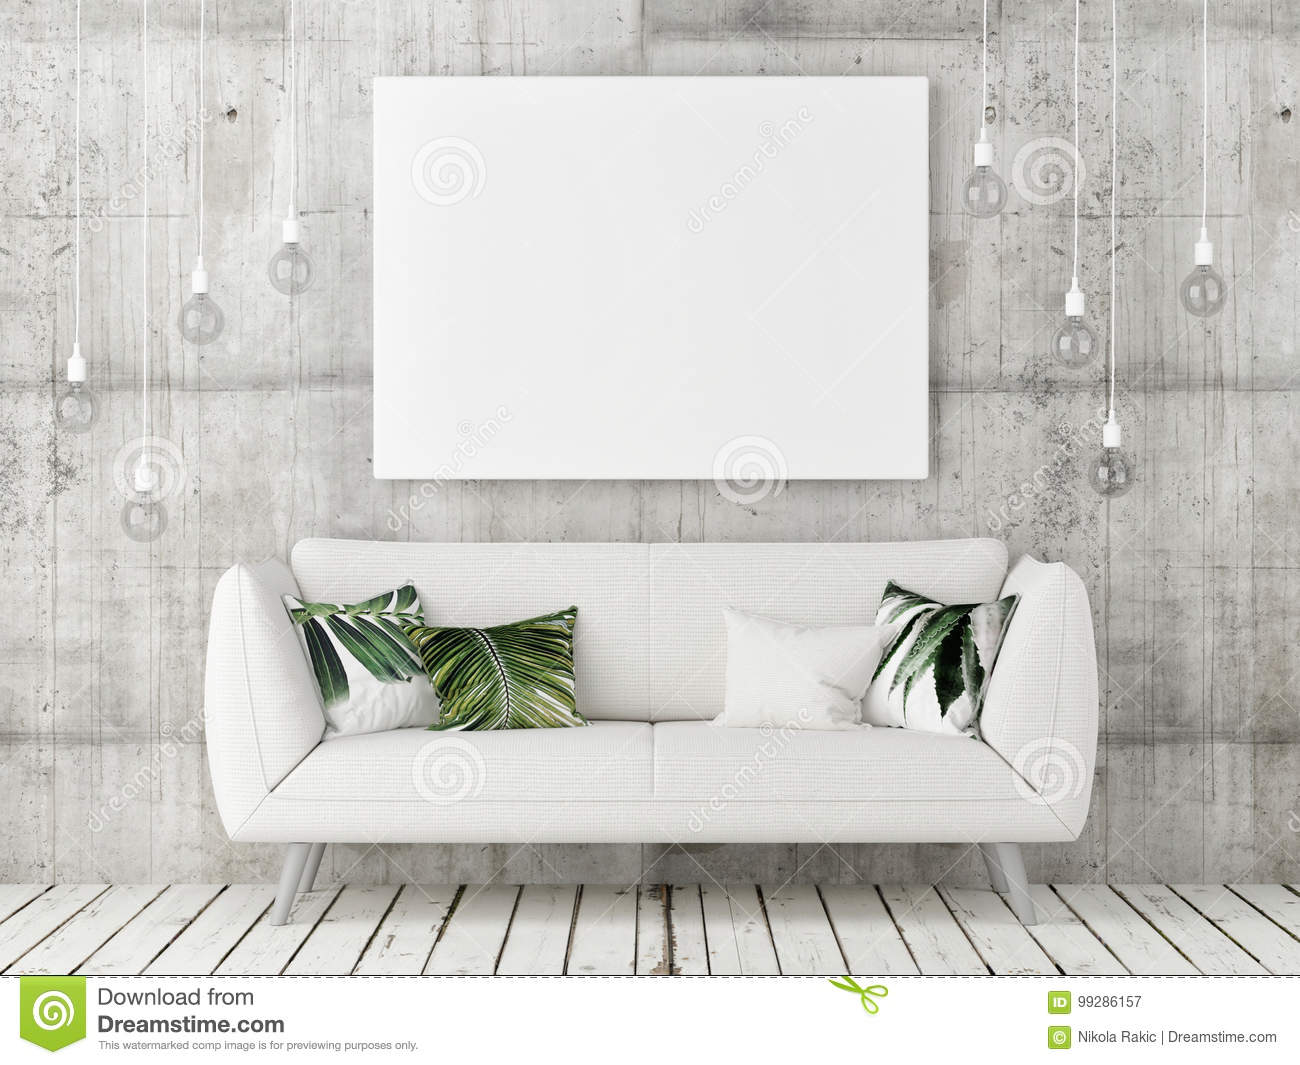 Miraculous Mock Up Poster With White Sofa Minimalism Design Stock Unemploymentrelief Wooden Chair Designs For Living Room Unemploymentrelieforg